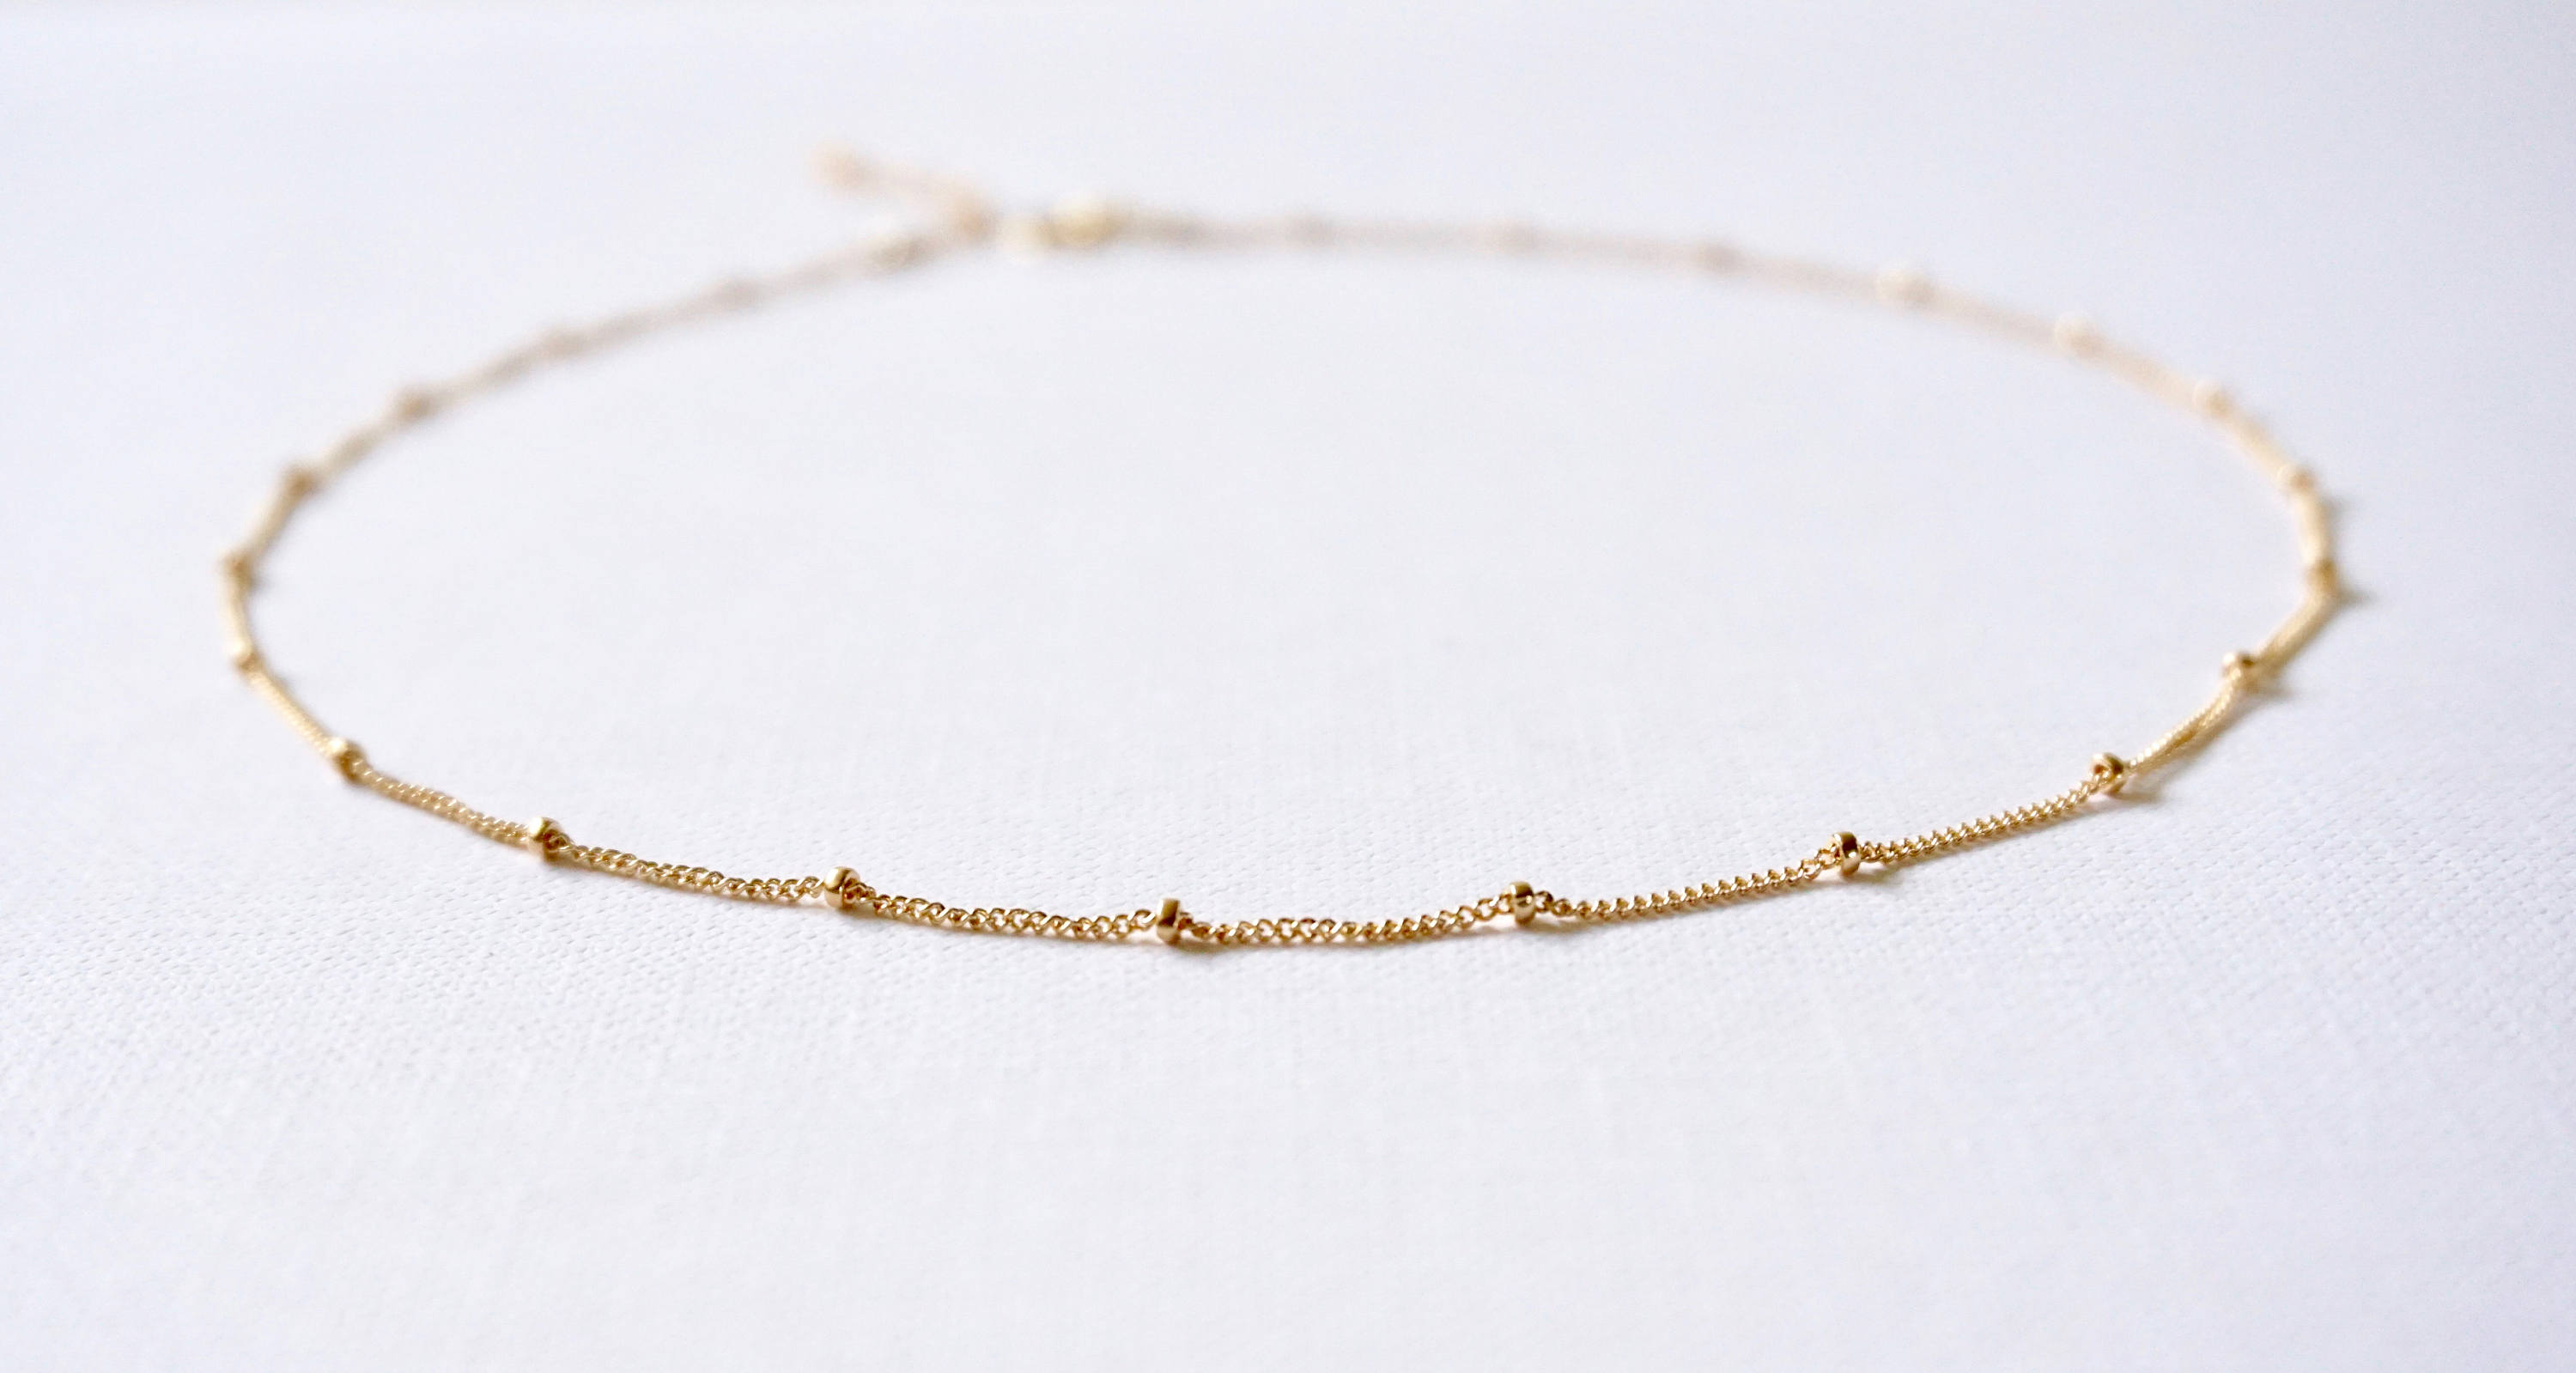 Beaded Chain Necklace, Beaded Chain Choker, Gold Filled Beaded Satellite  Chain, Sterling Silver Satellite Chain, Rose Gold Beaded Chain For 2020 Beaded Chain Necklaces (Gallery 3 of 25)